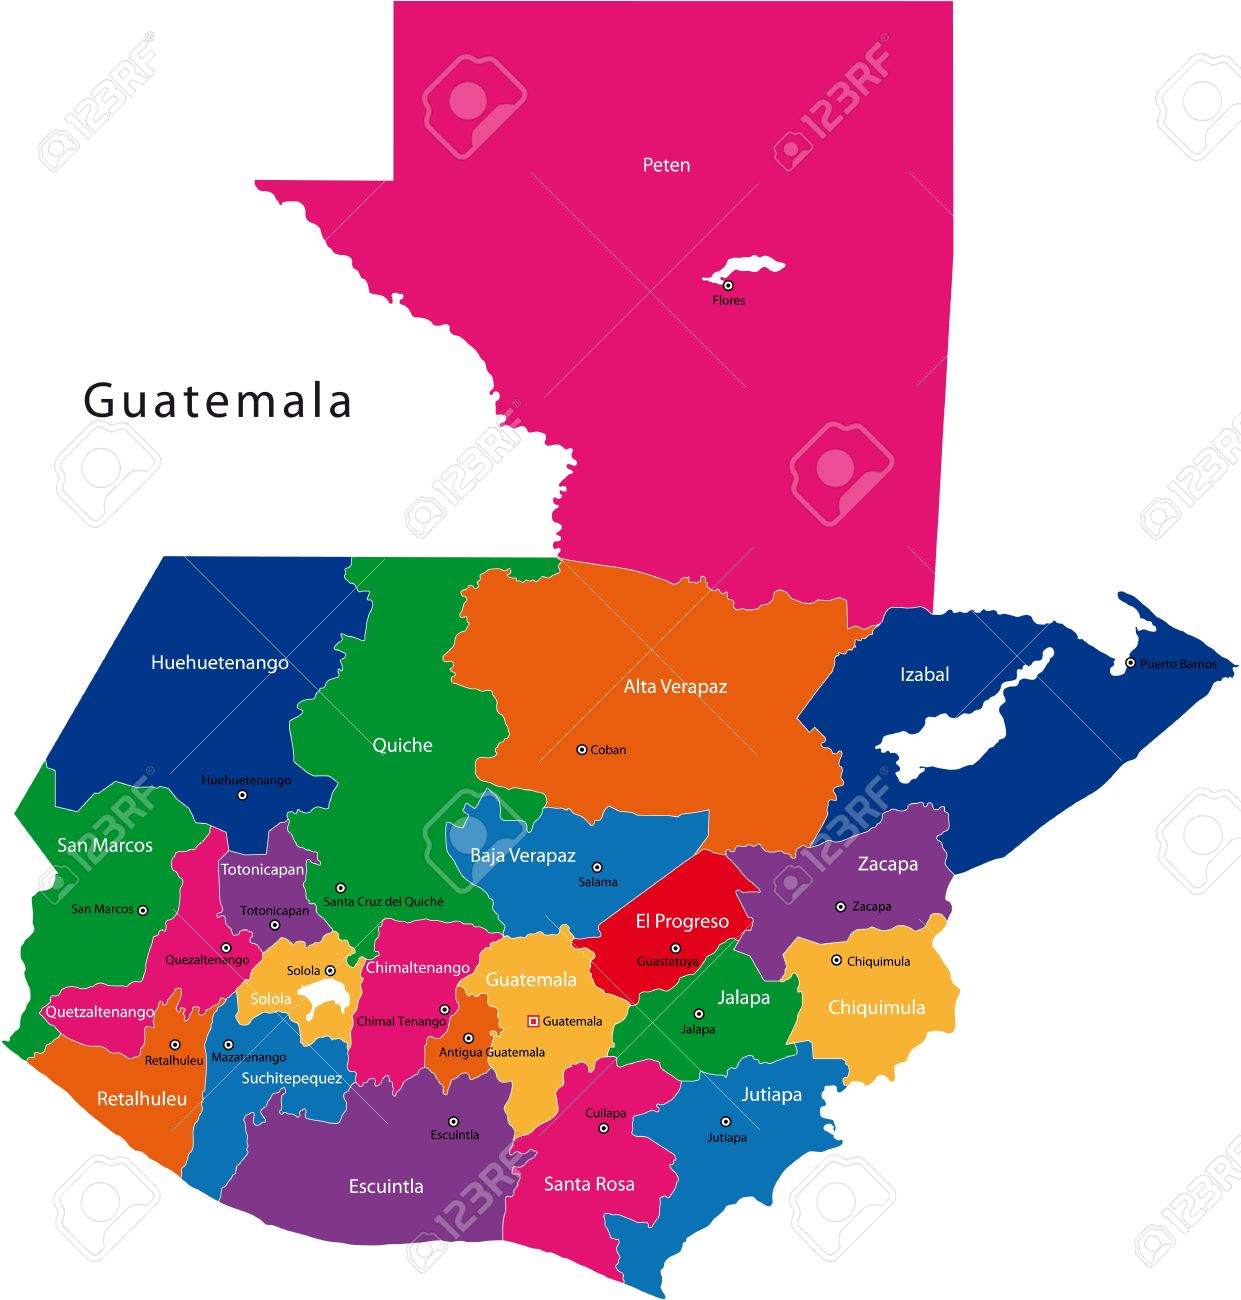 Map Of The Republic Of Guatemala With The Departments Colored ...